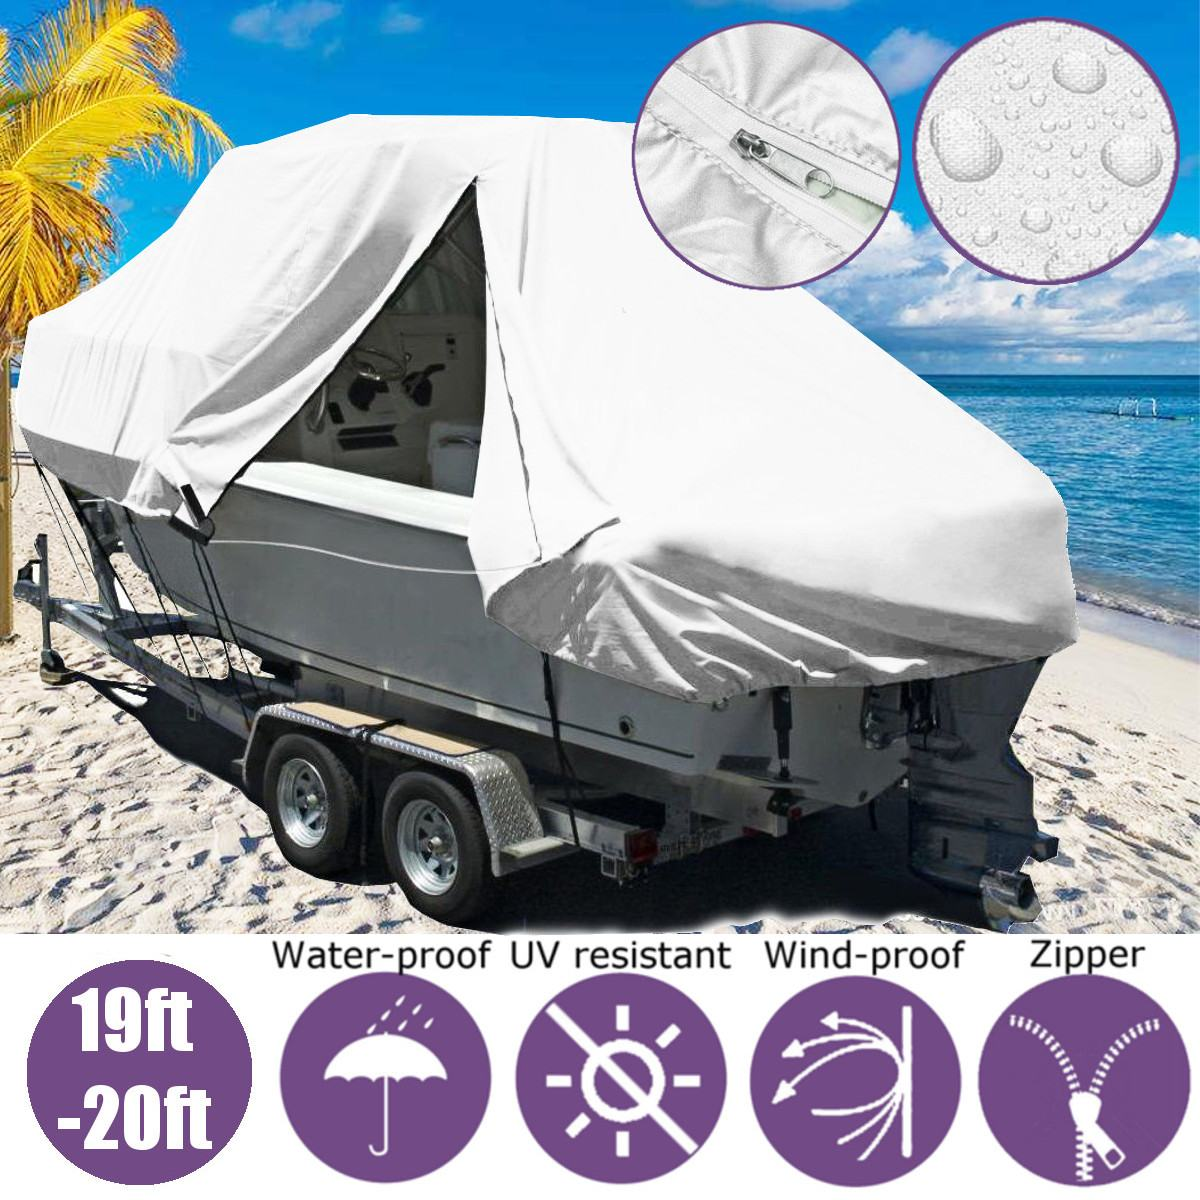 19-20ft 5.8-6.1m Boat Cover Marine Boat Yacht New Design Premium Heavy Duty 600D Trailerable Jumbo Boat Cover image